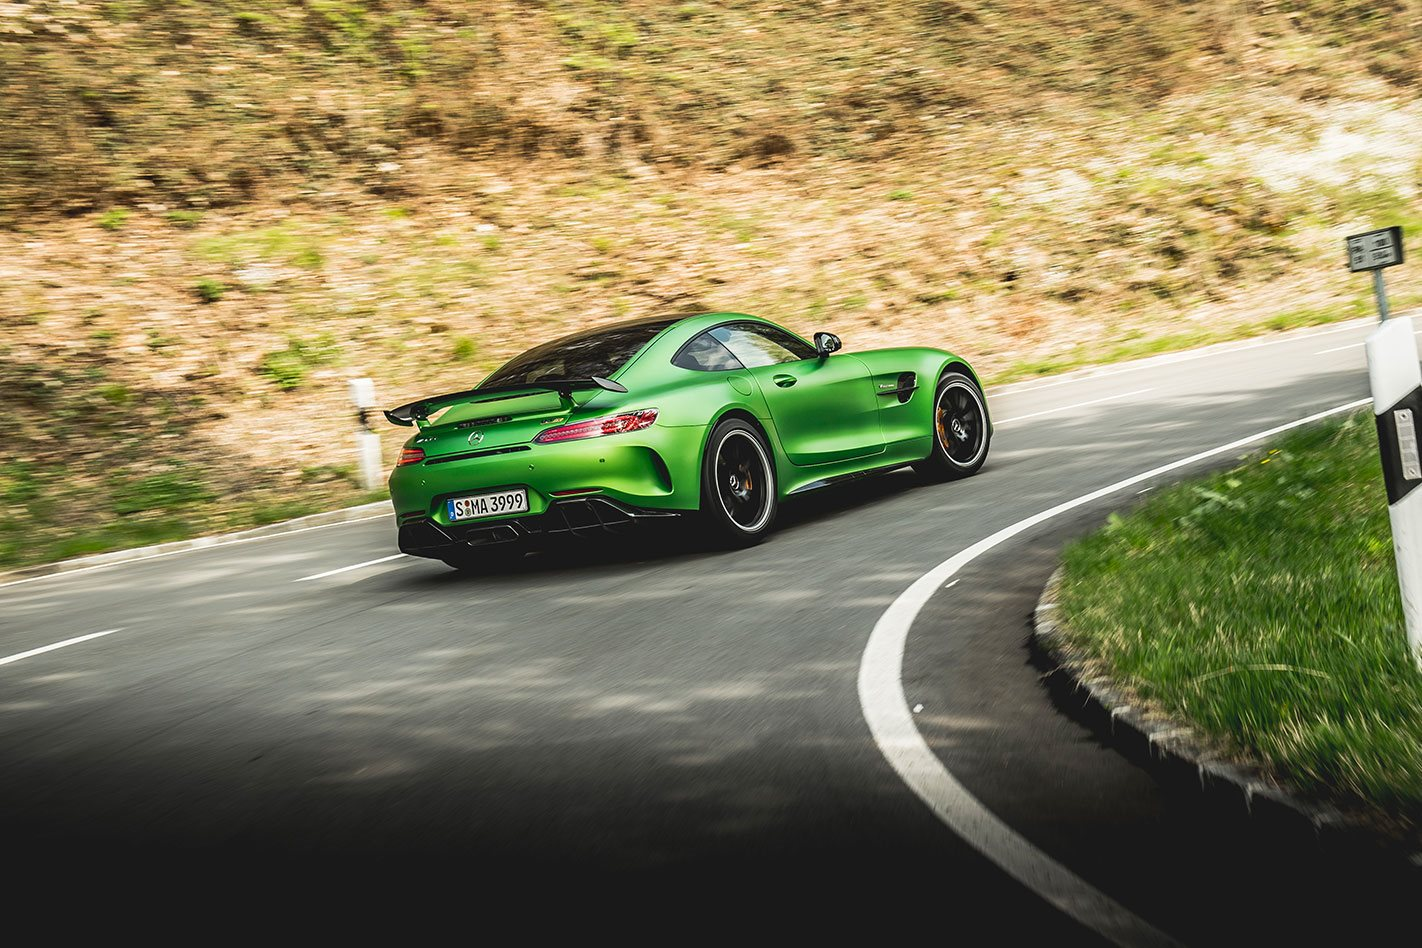 Mercedes AMG GT R driving